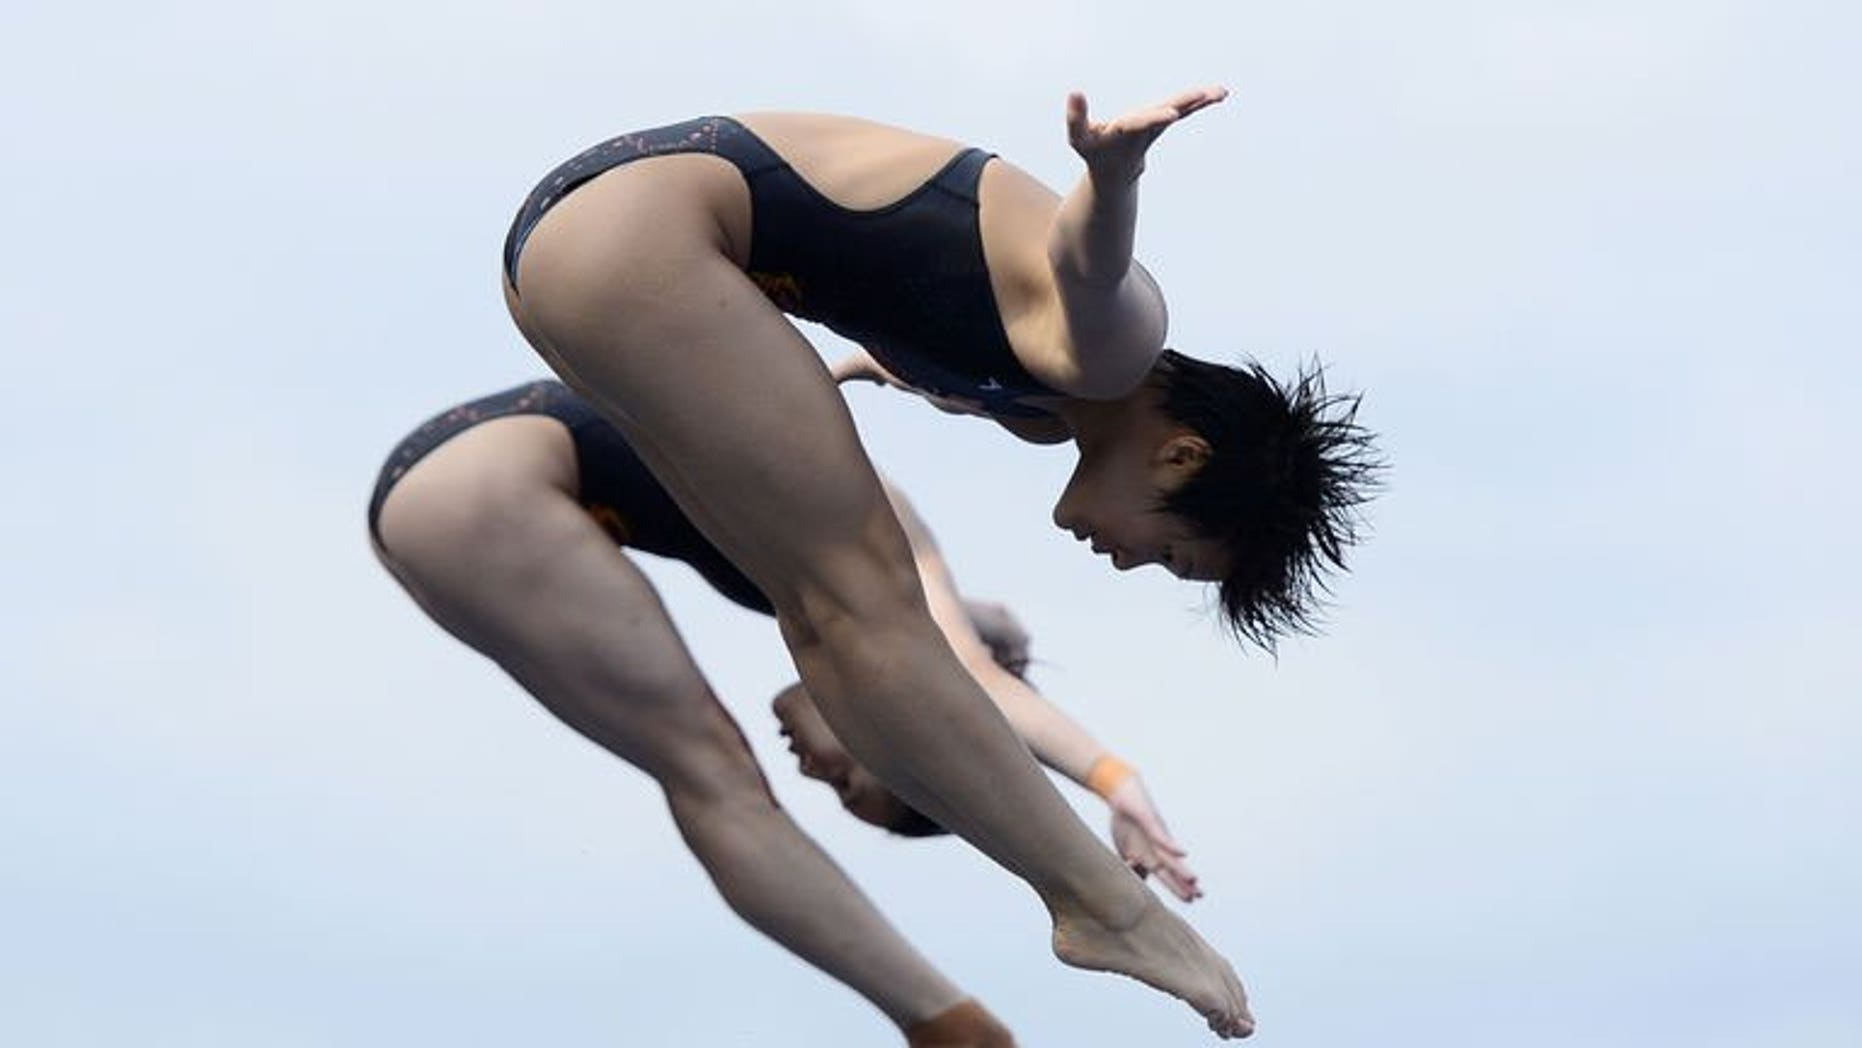 China's Shi Tingmao and Wu Minxia compete in the women's 3-metre synchro springboard final diving event in the FINA World Championships at the Piscina Municipal de Montjuic in Barcelona on July 20, 2013. Shi and Wu won gold.